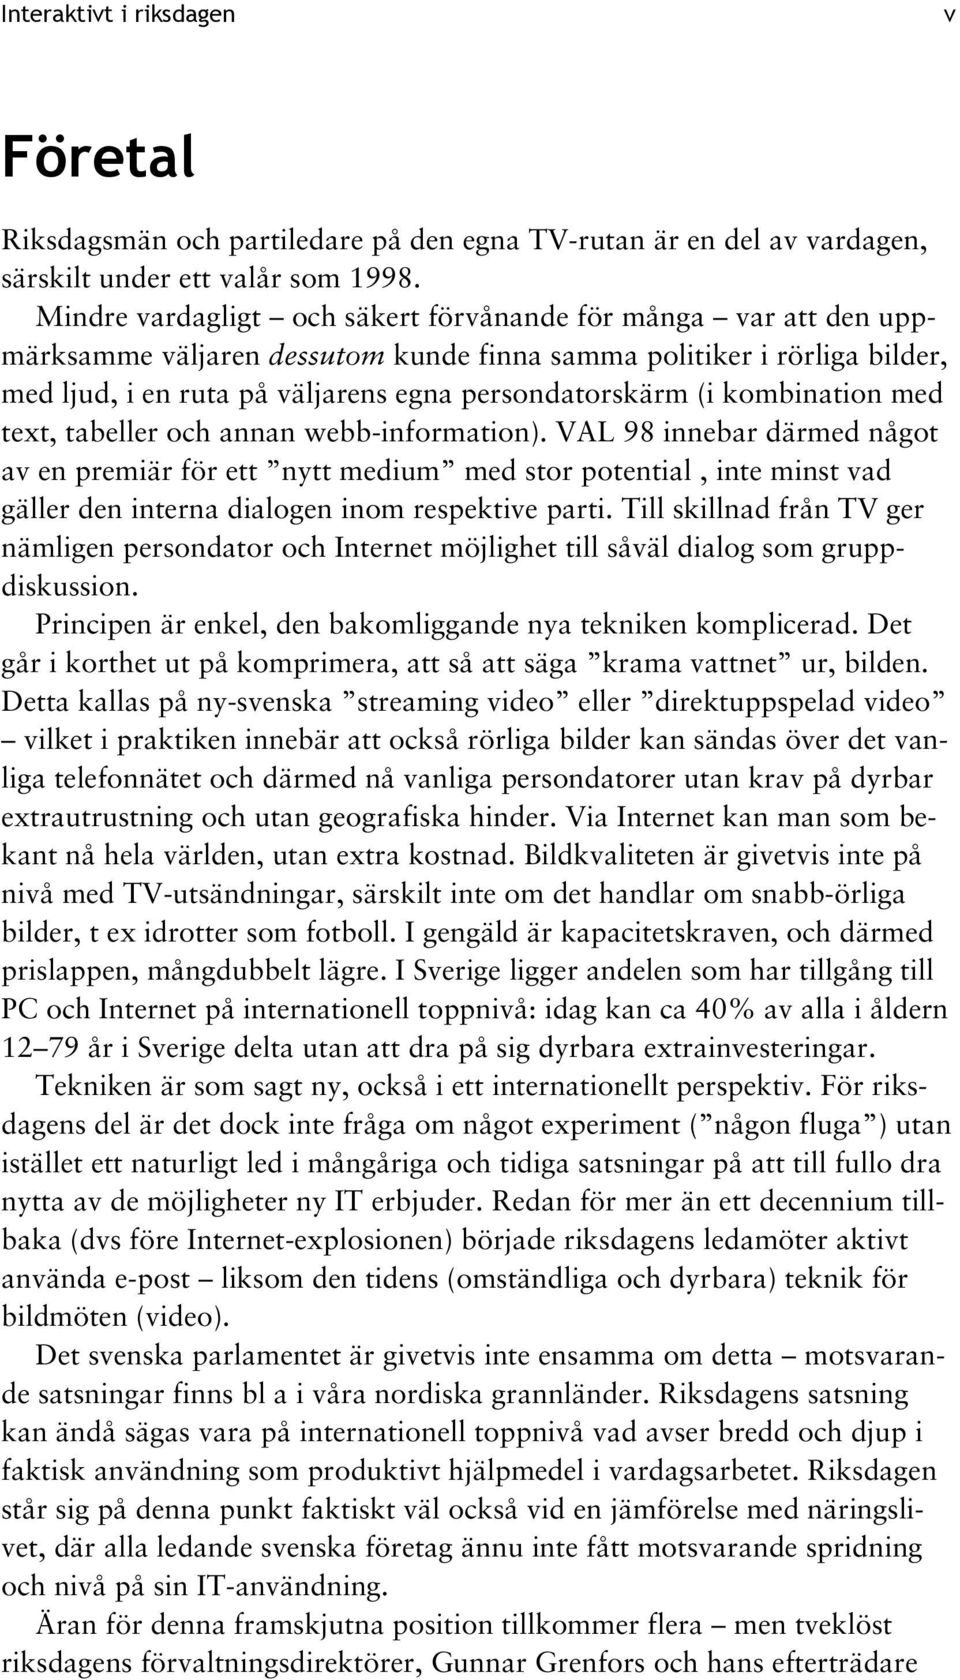 kombination med text, tabeller och annan webb-information).